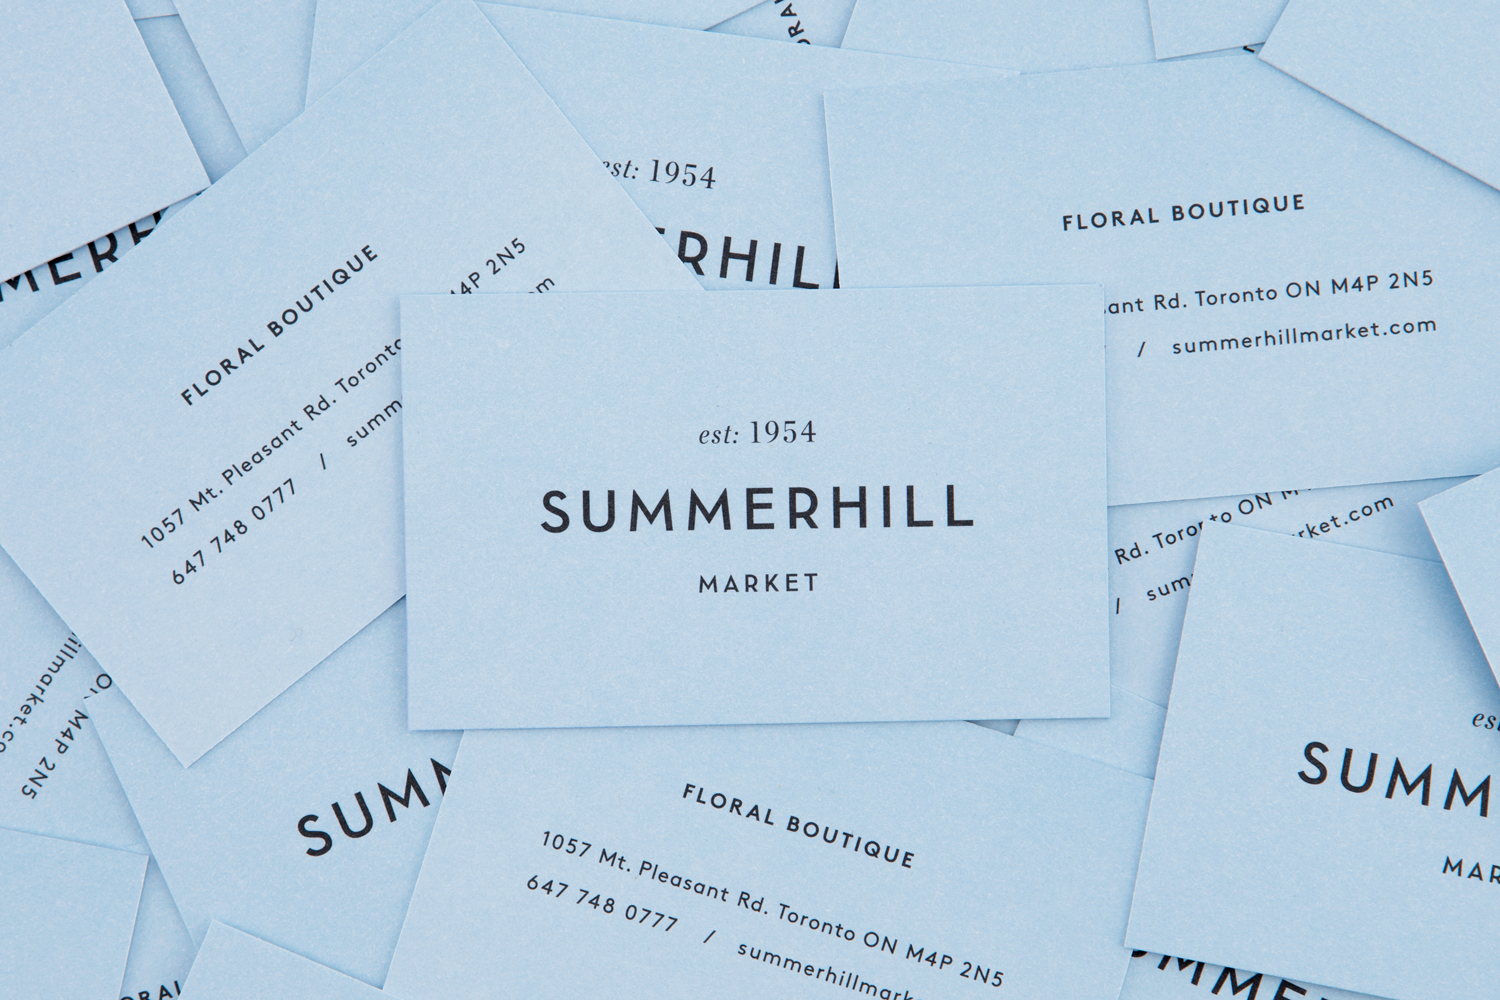 Brand identity and business cards designed by Canadian studio Blok for Toronto based boutique grocery store Summerhill Market